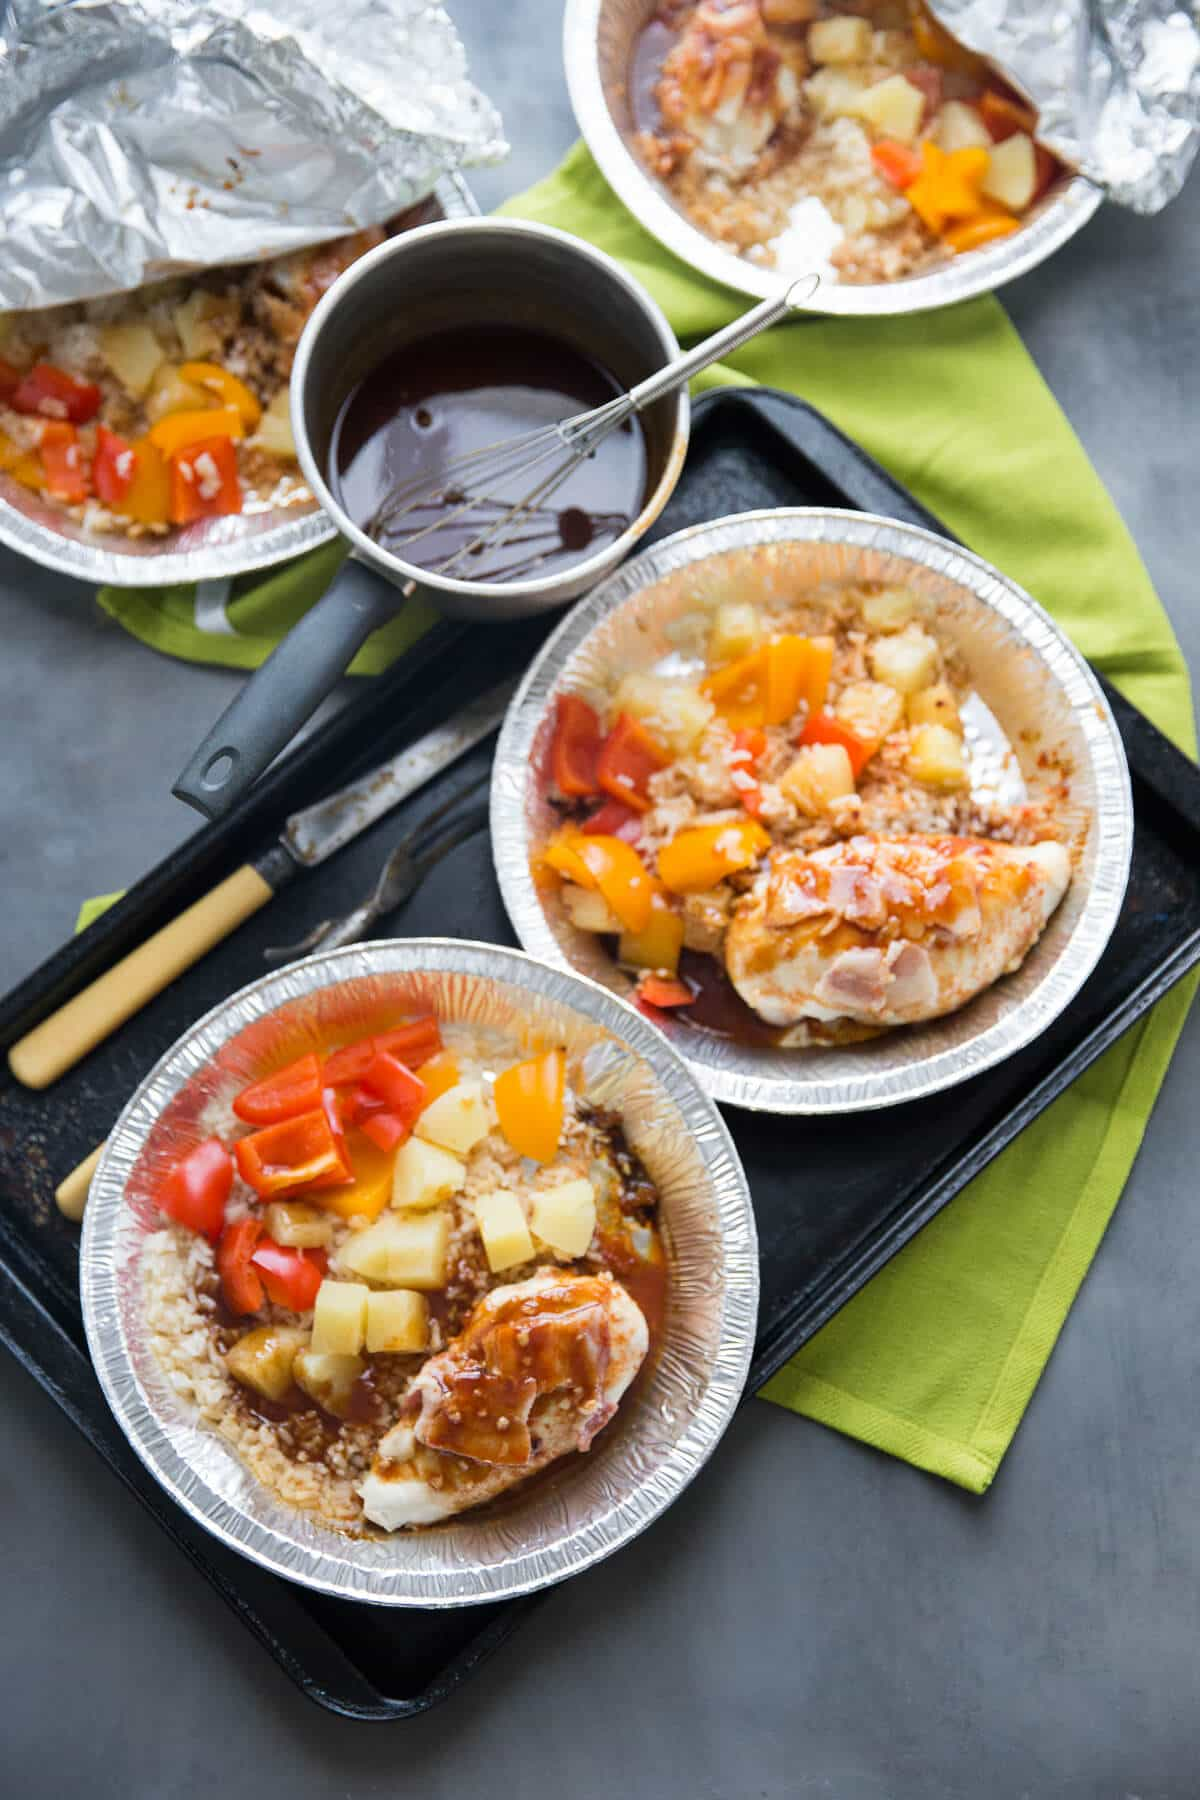 This pineapple chicken is a one pot meal that is cooked right on the grill! So easy and so good!